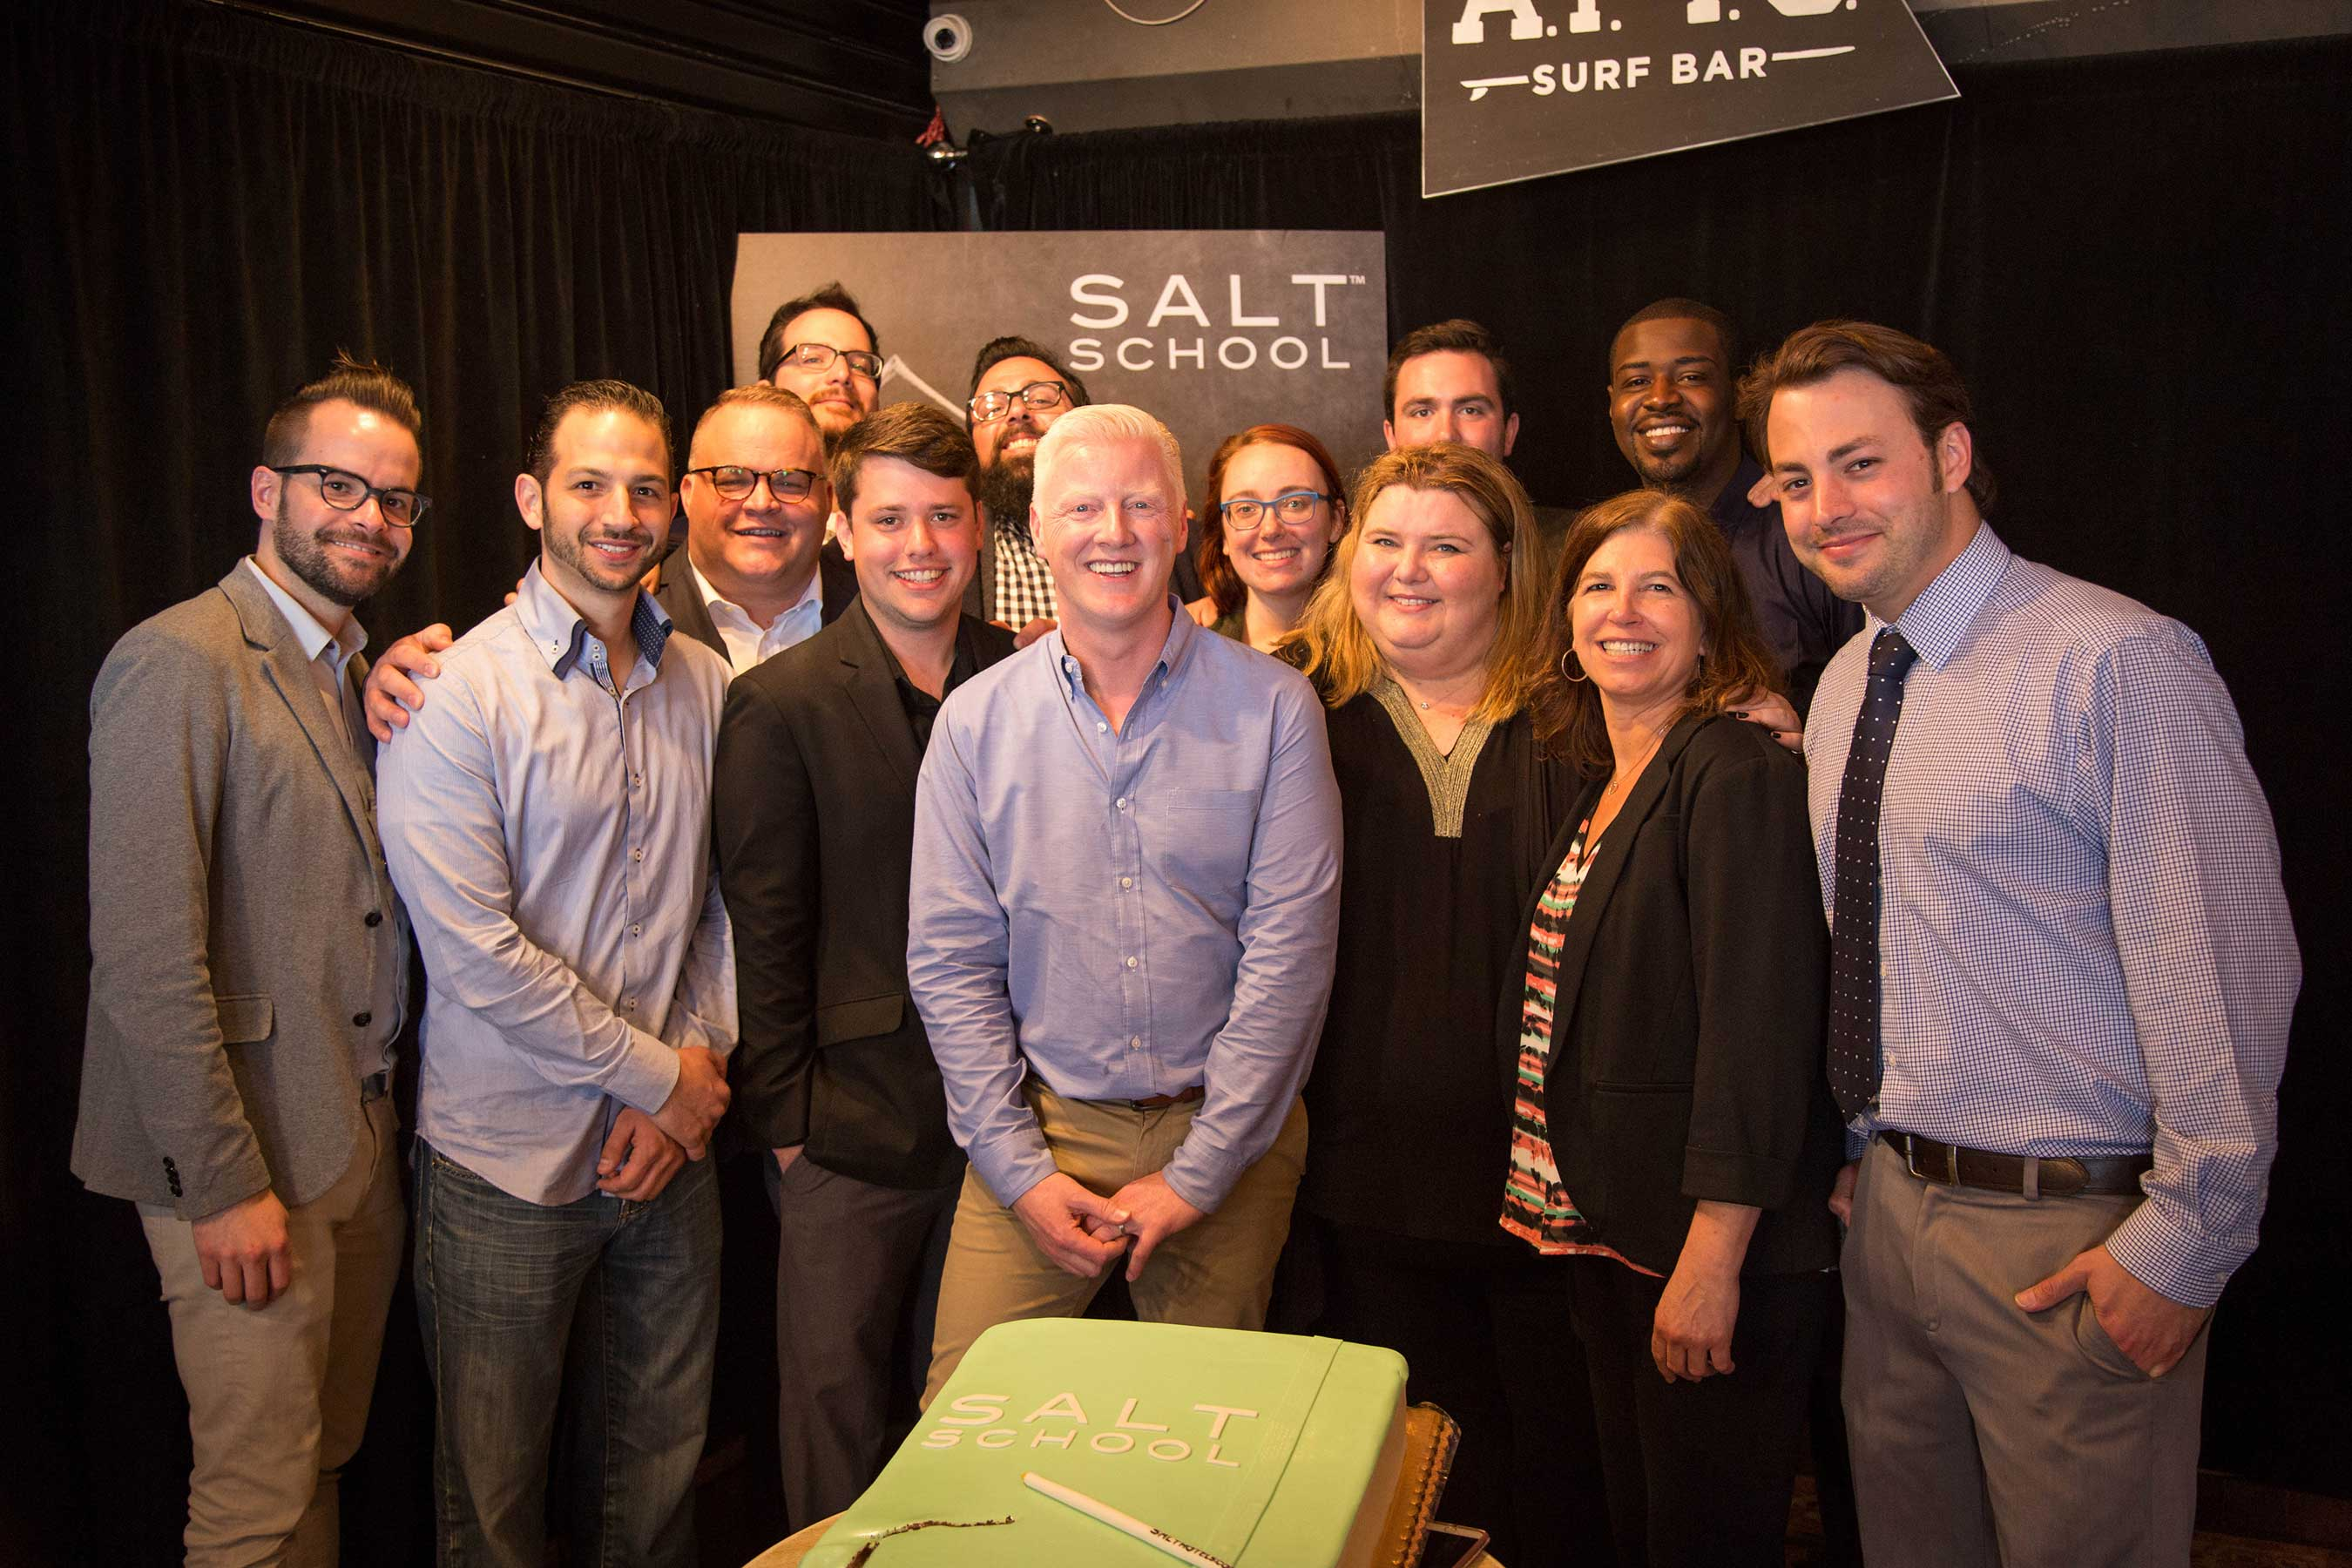 Executive team behind Salt School, hospitality training program in conjunction with The Asbury Hotel, Asbury Park, NJ